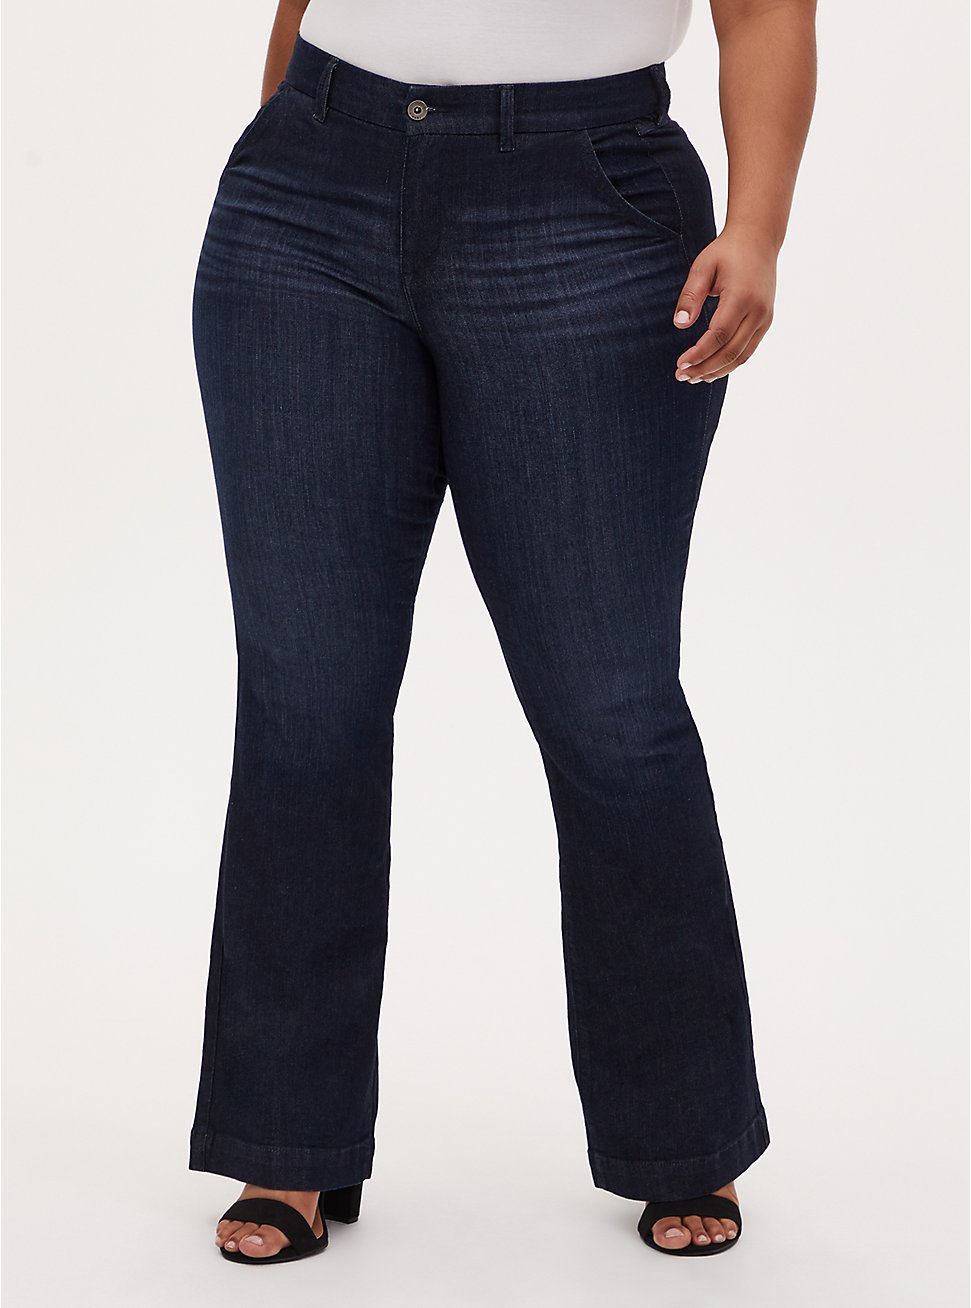 Plus Size Mid Rise Flare Jean - Vintage Stretch Eco Dark Wash , LOST IN SPACE, hi-res